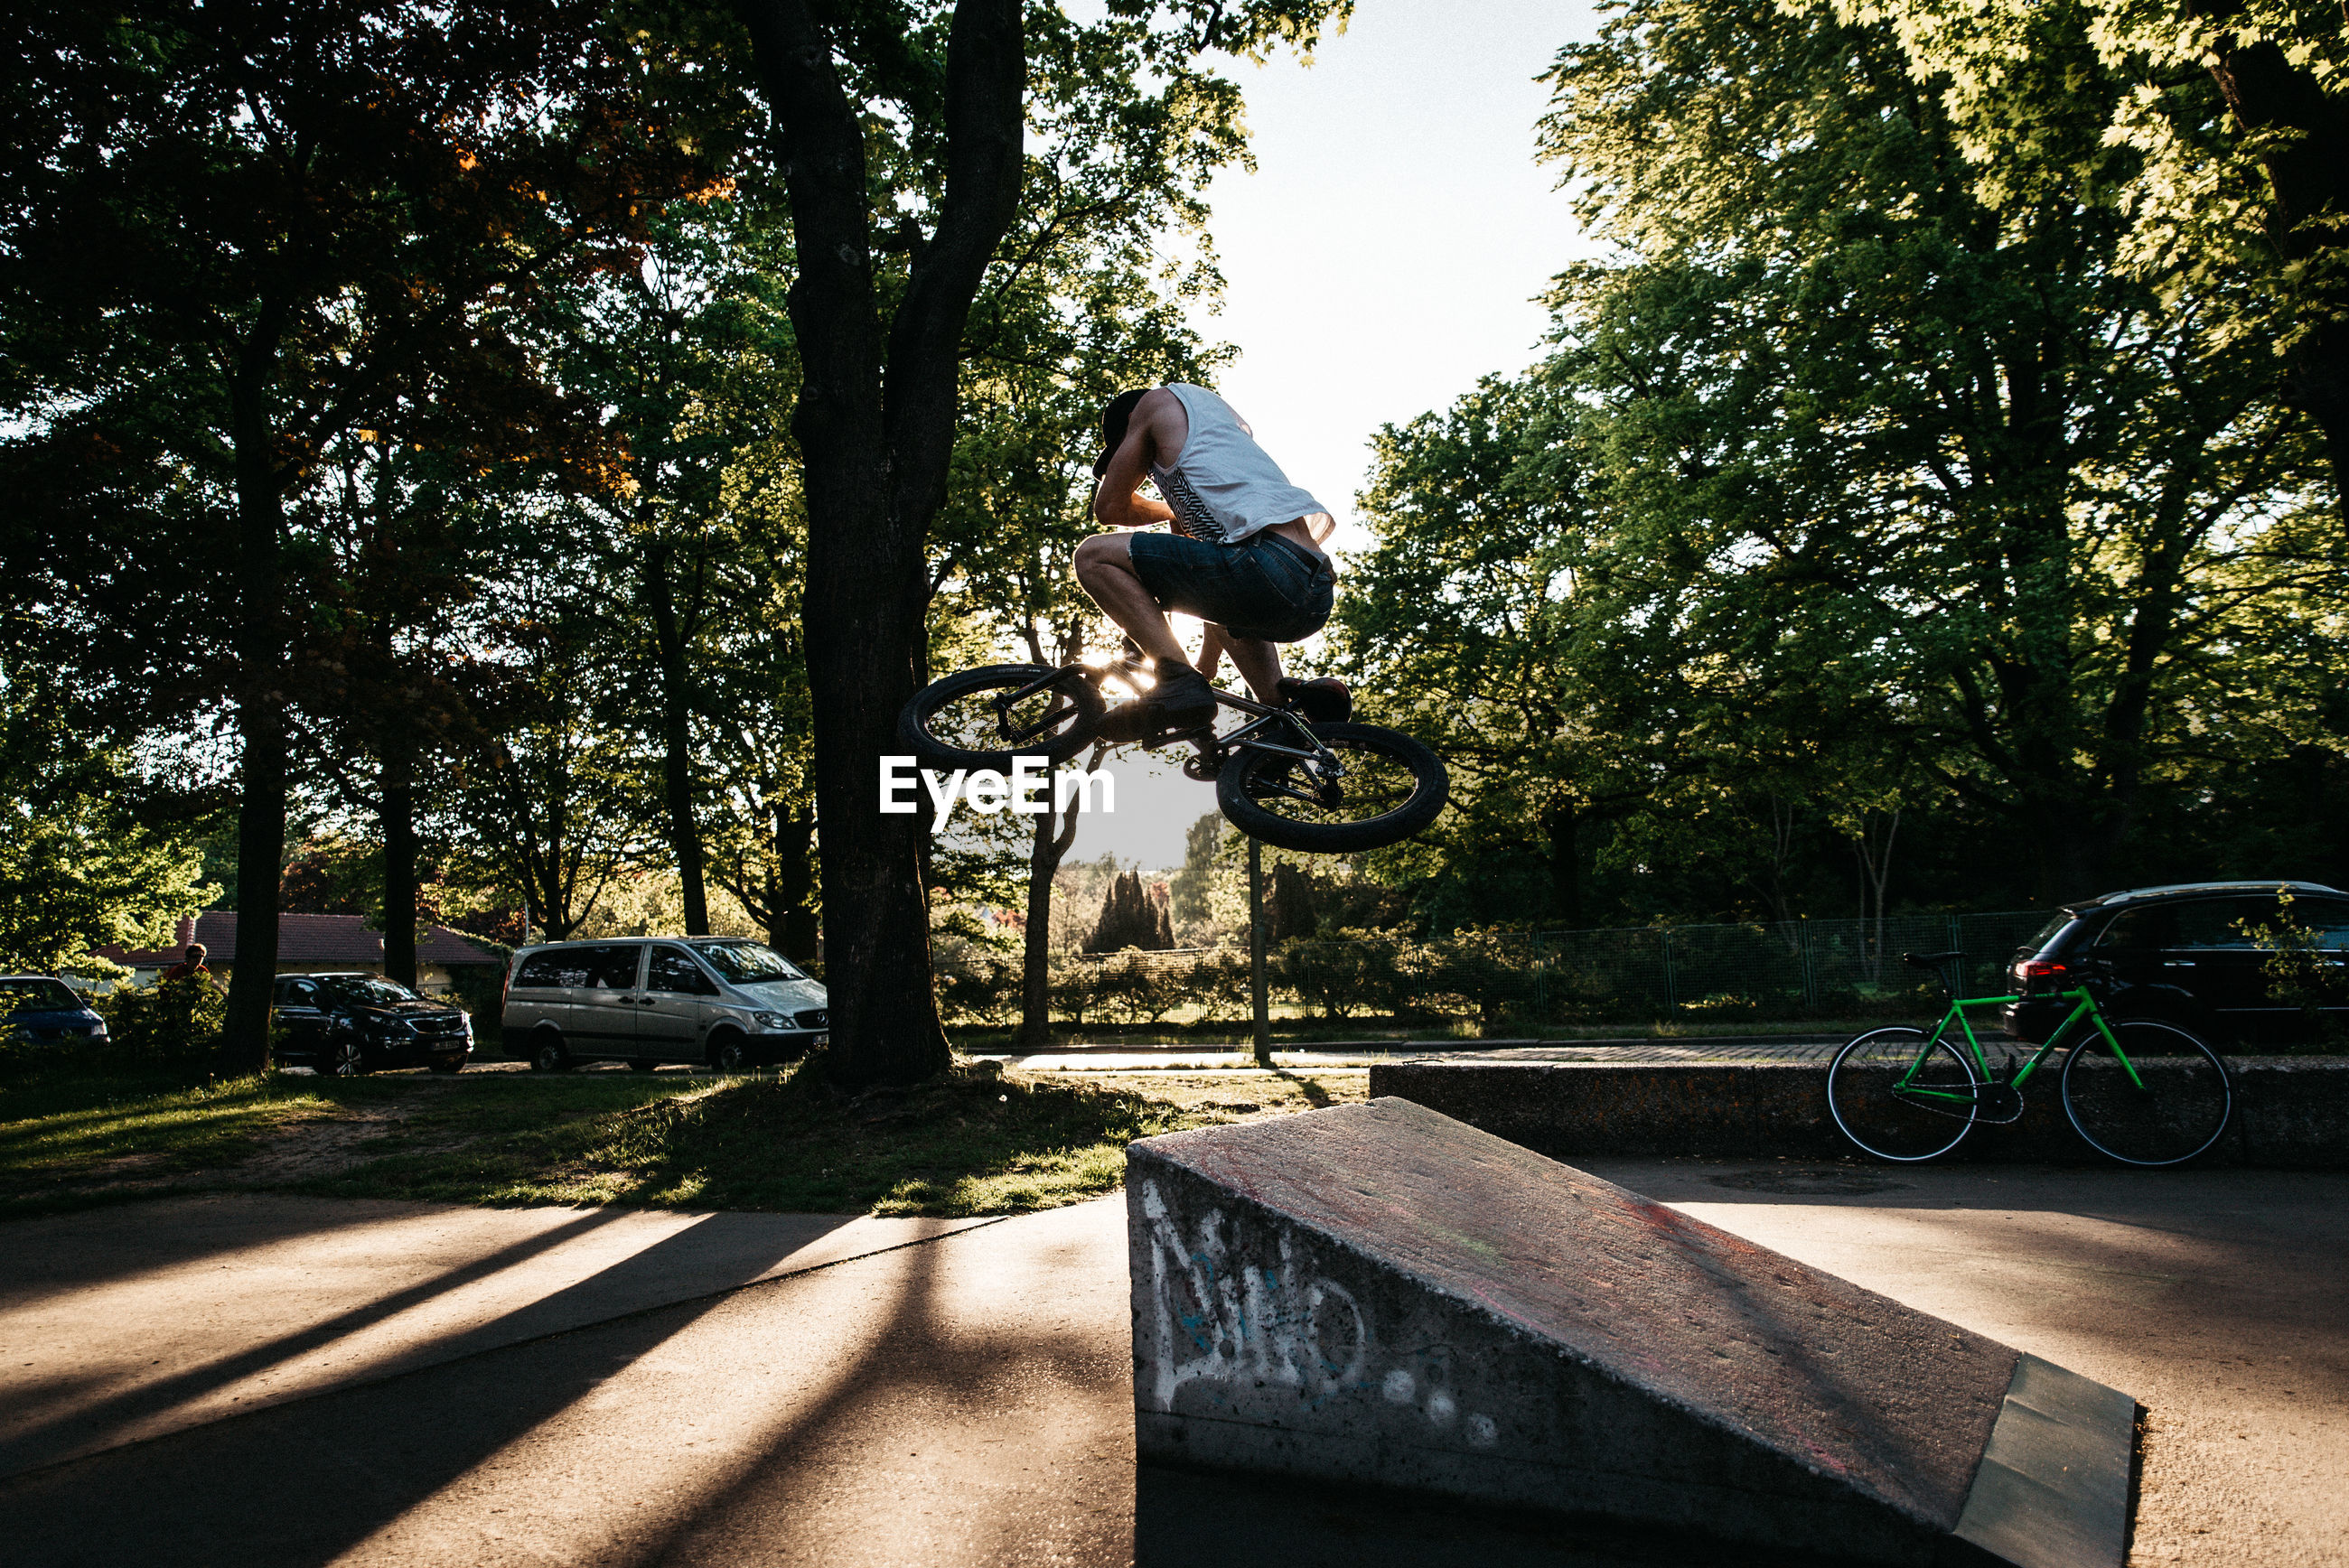 Man doing stunts with bicycle against trees